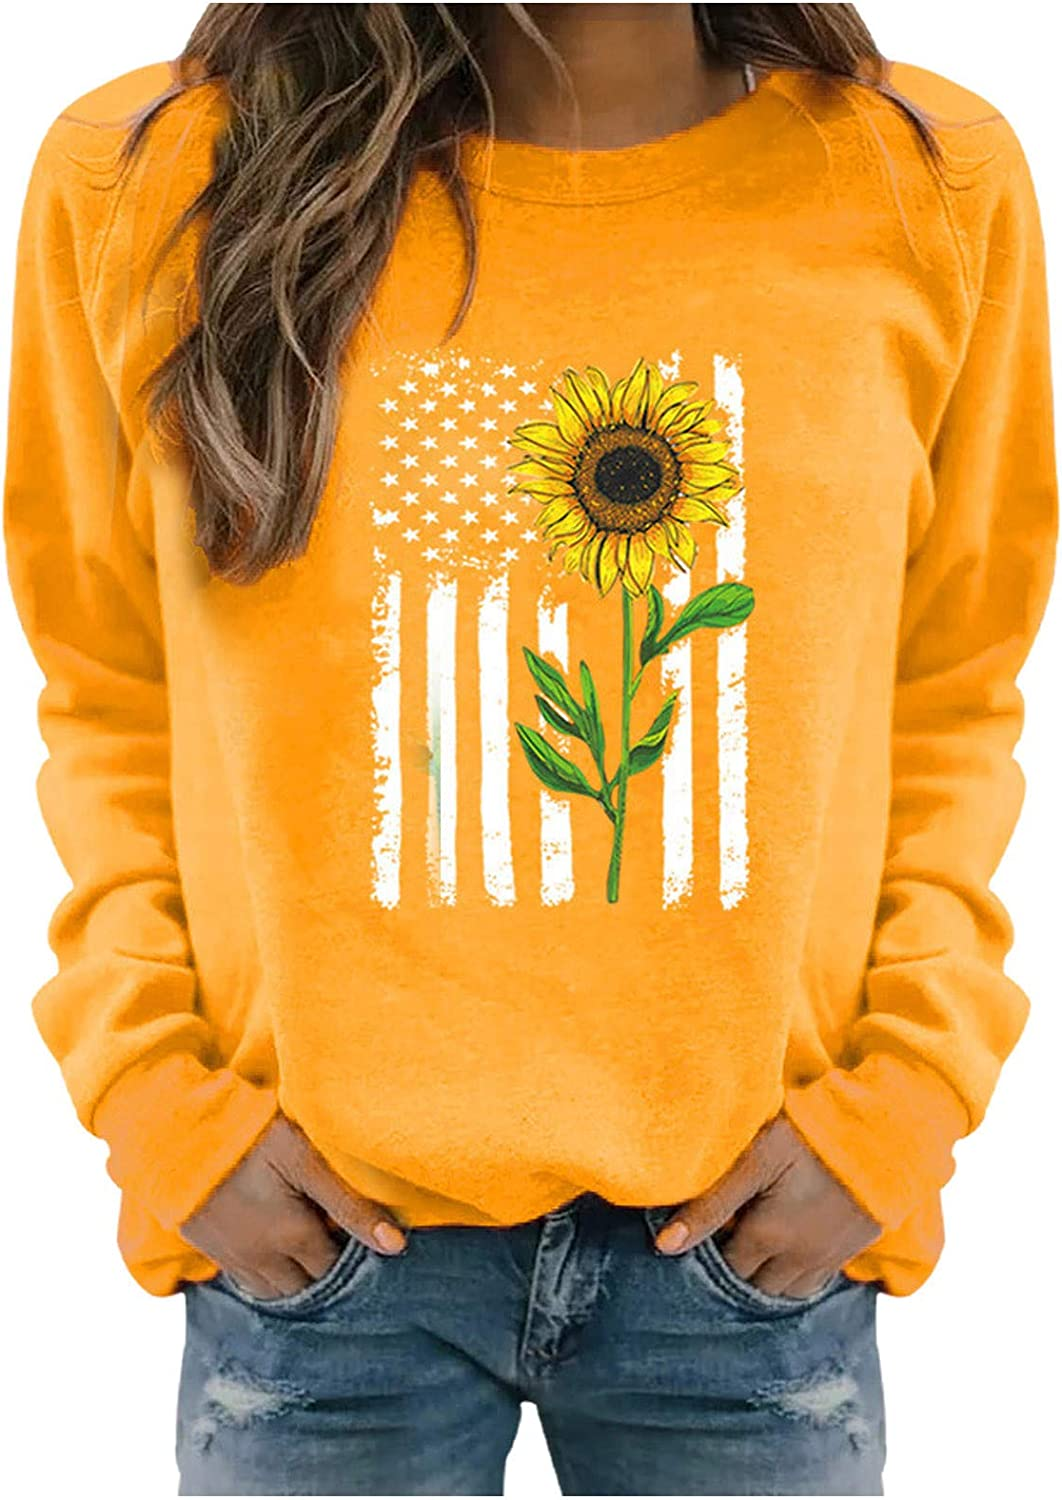 Tupenty Women's Tshirts Graphic Long Sleeve Sunflower Printed Tops and Blouse Casual Loose Fit Tunic Sweatshirts